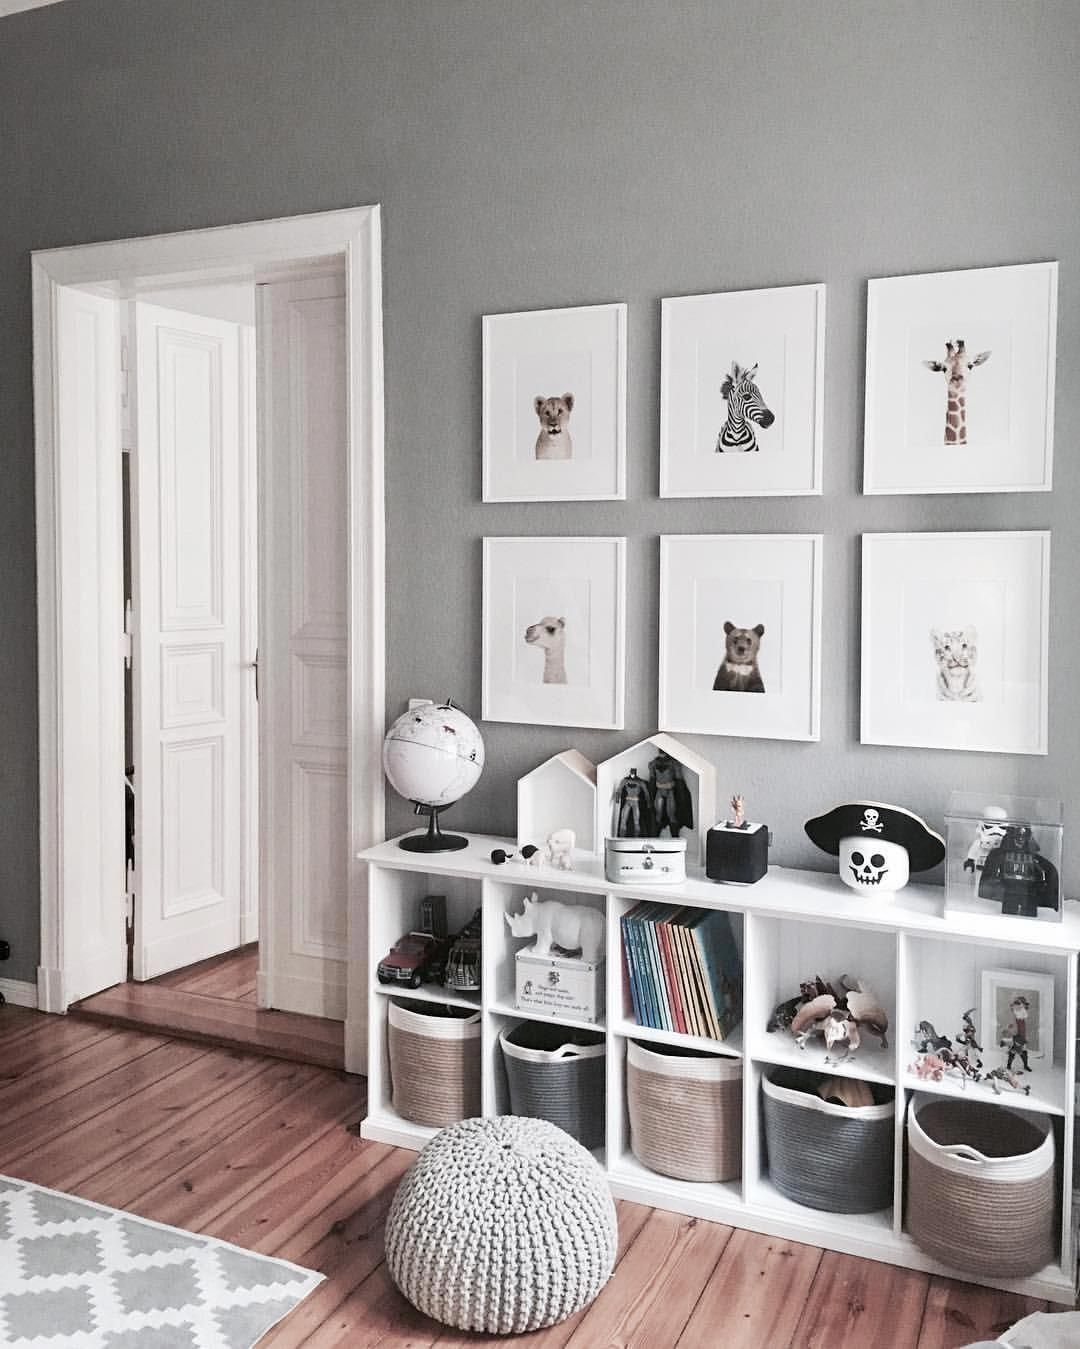 Grey and white bedroom decor playroom Cube bookshelves for heaps of